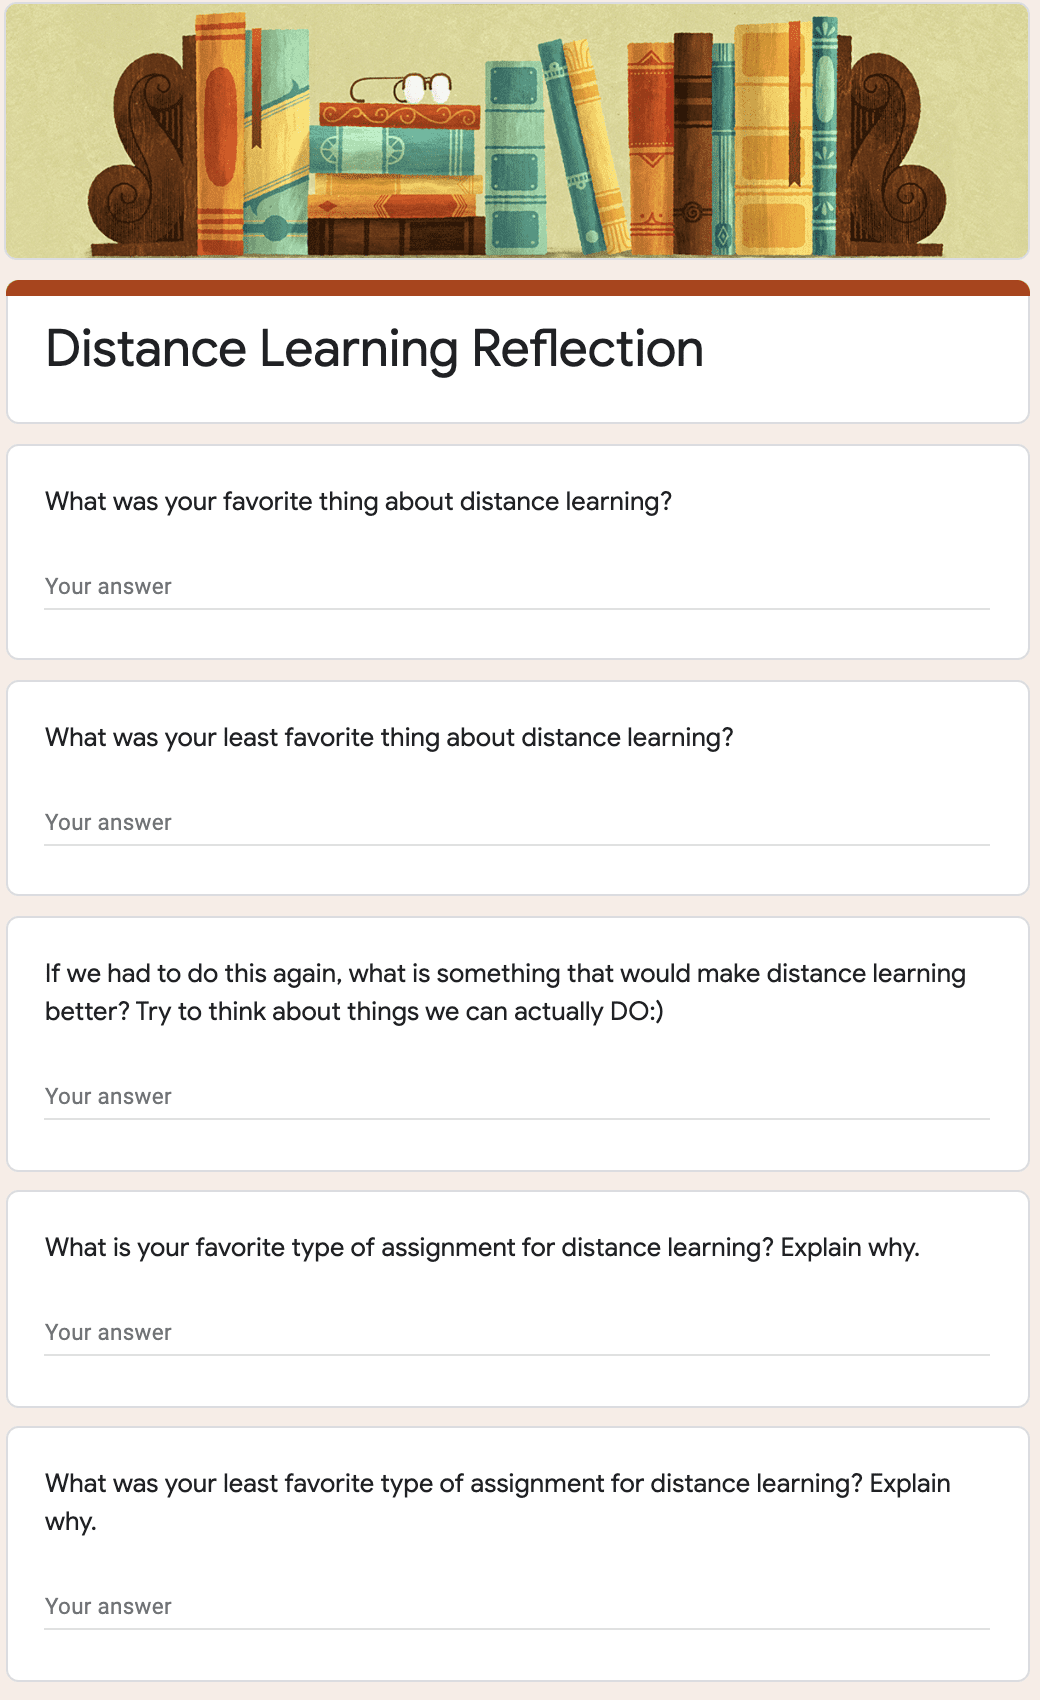 Distance Learning Self-Reflection Form Preview